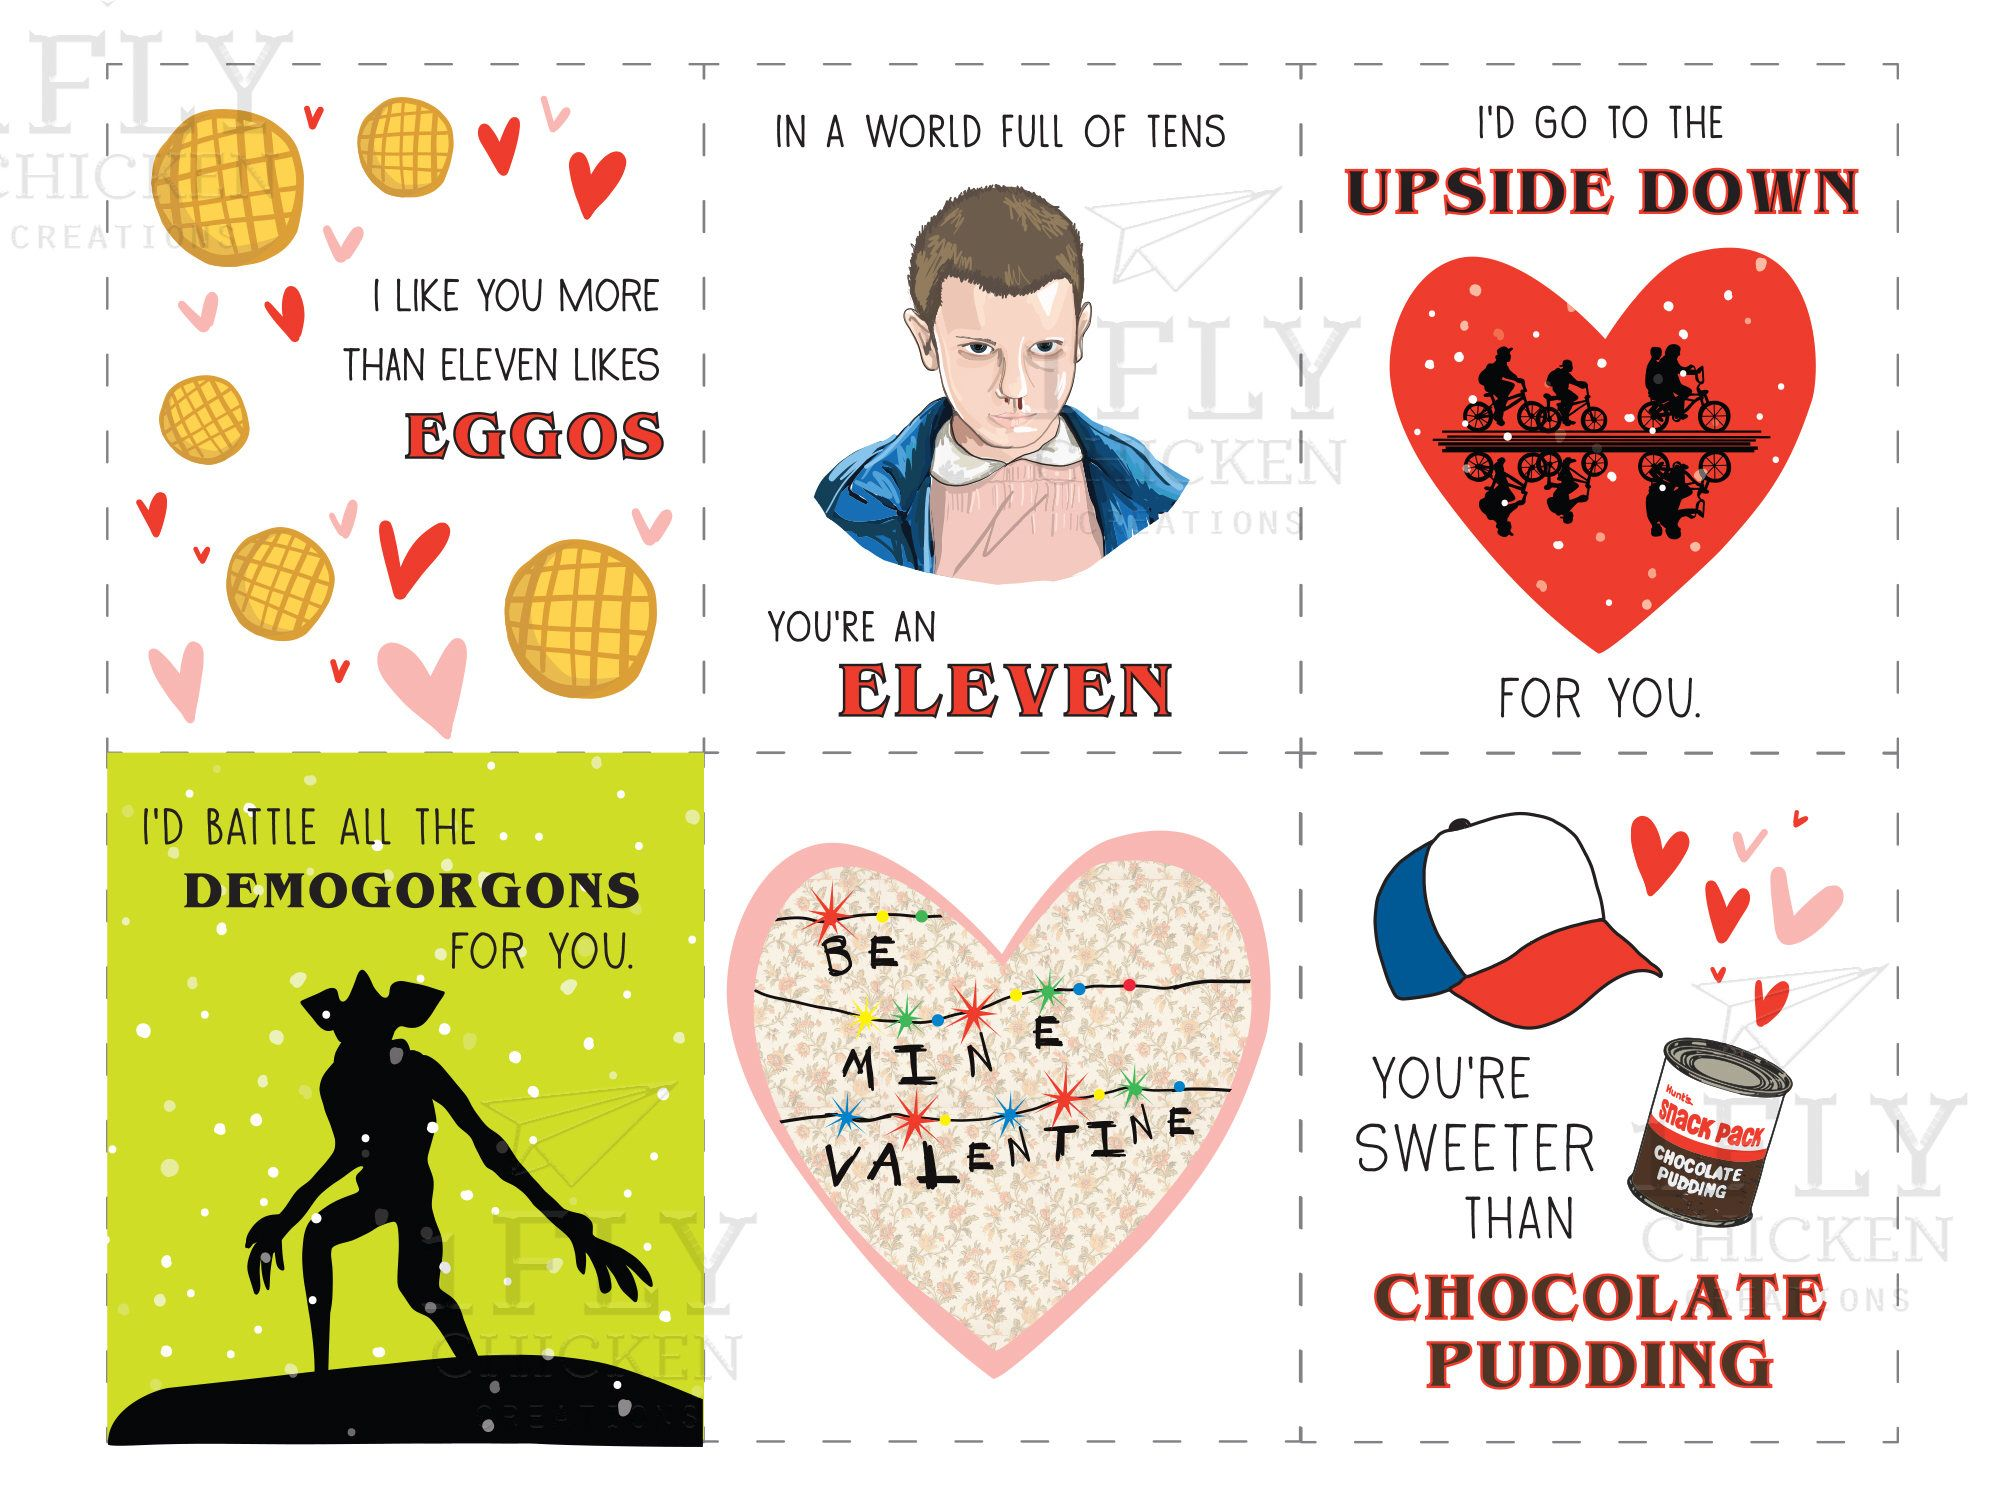 image regarding Funny Printable Valentines Cards named Stranger Factors Printable Valentines Working day Playing cards - Humorous